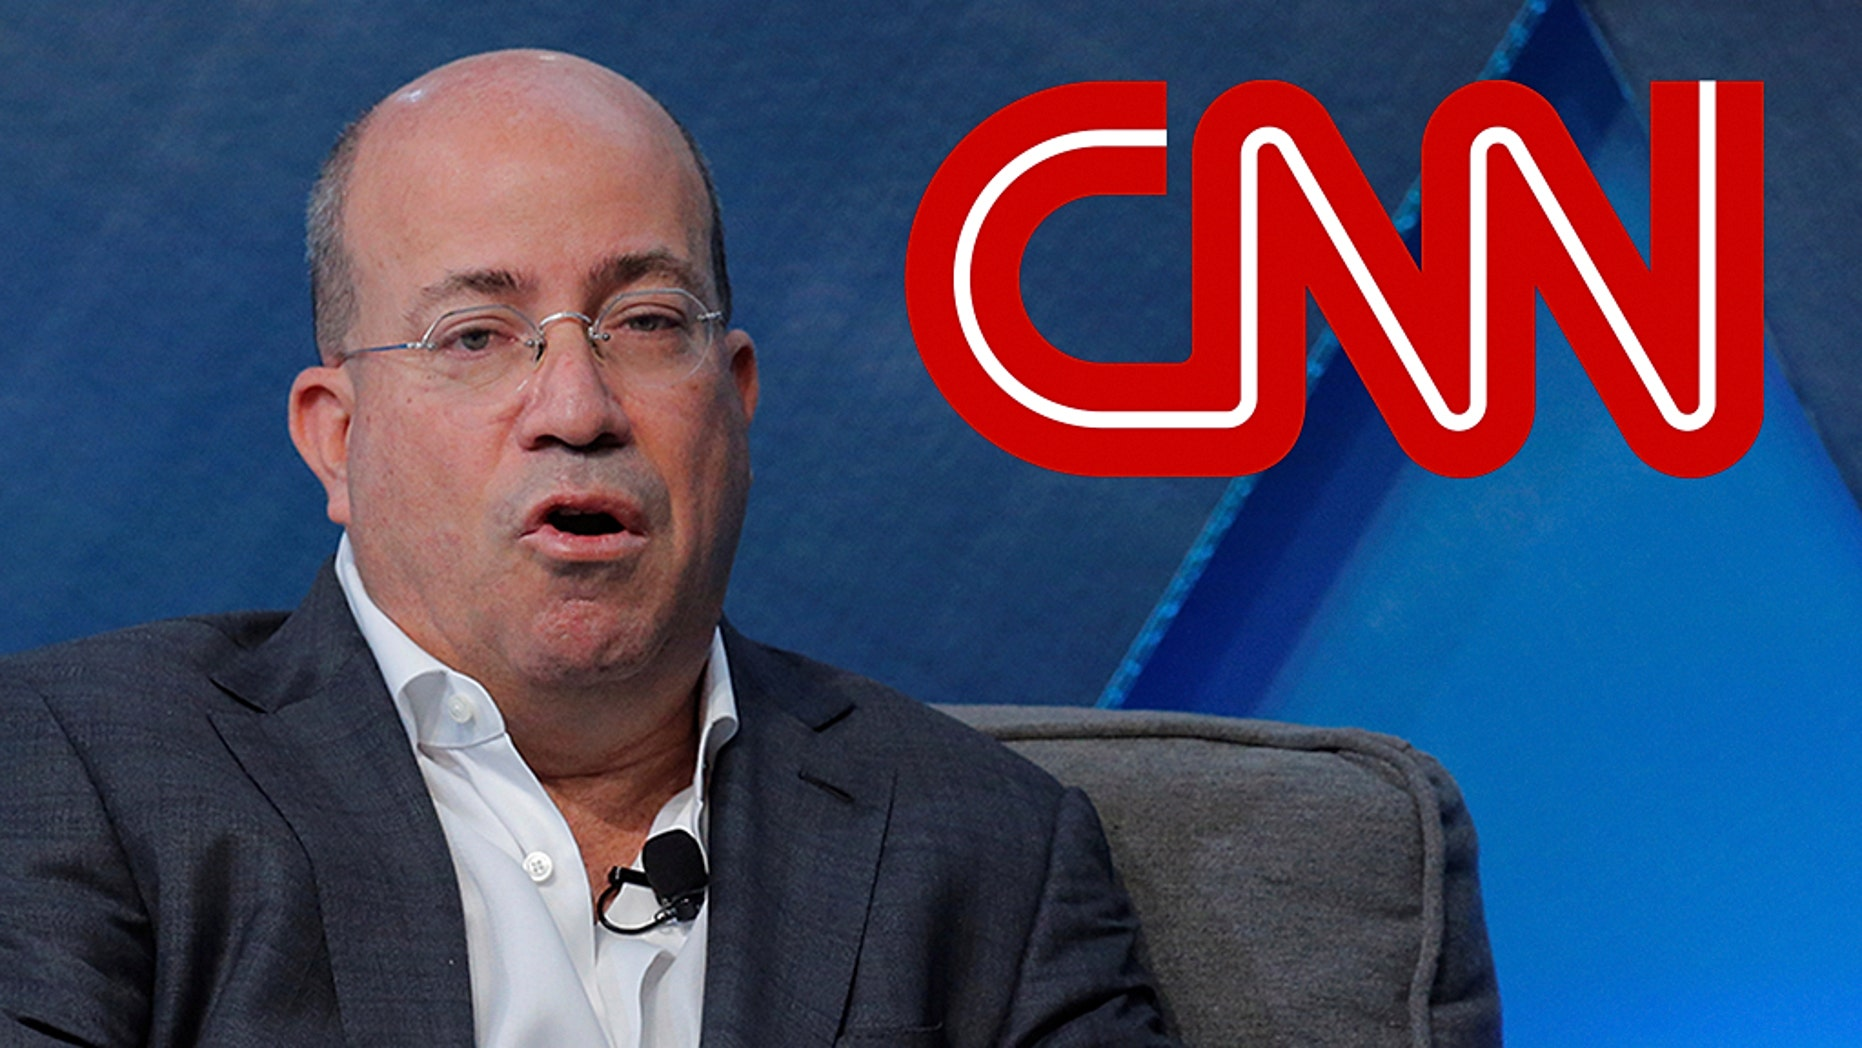 """CNN President Jeff Zucker made a sexualjoke about one of his female employees, """"New Day"""" anchor Alisyn Camerota,while accepting an award on Thursday. (REUTERS/Lucas Jackson)"""